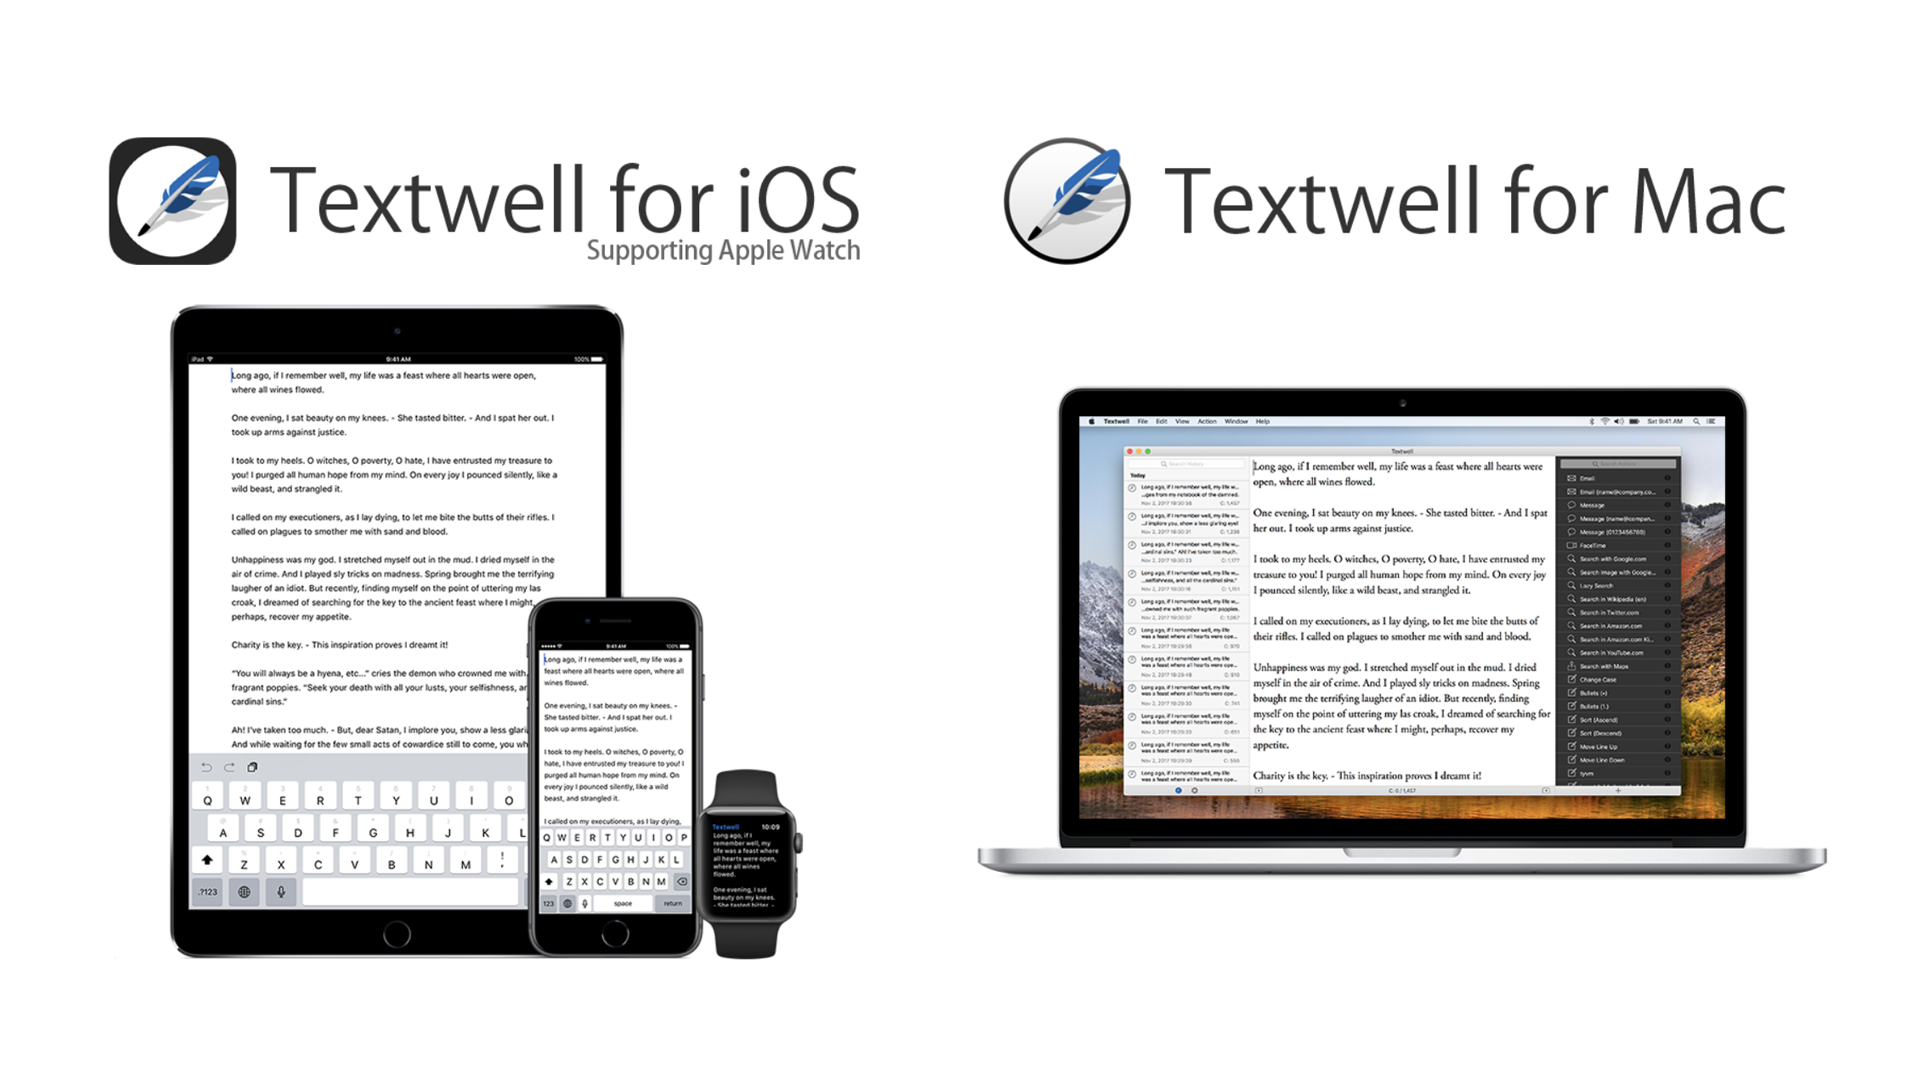 Textwell - The Modeless Textbox for iPhone, iPad, iPod touch